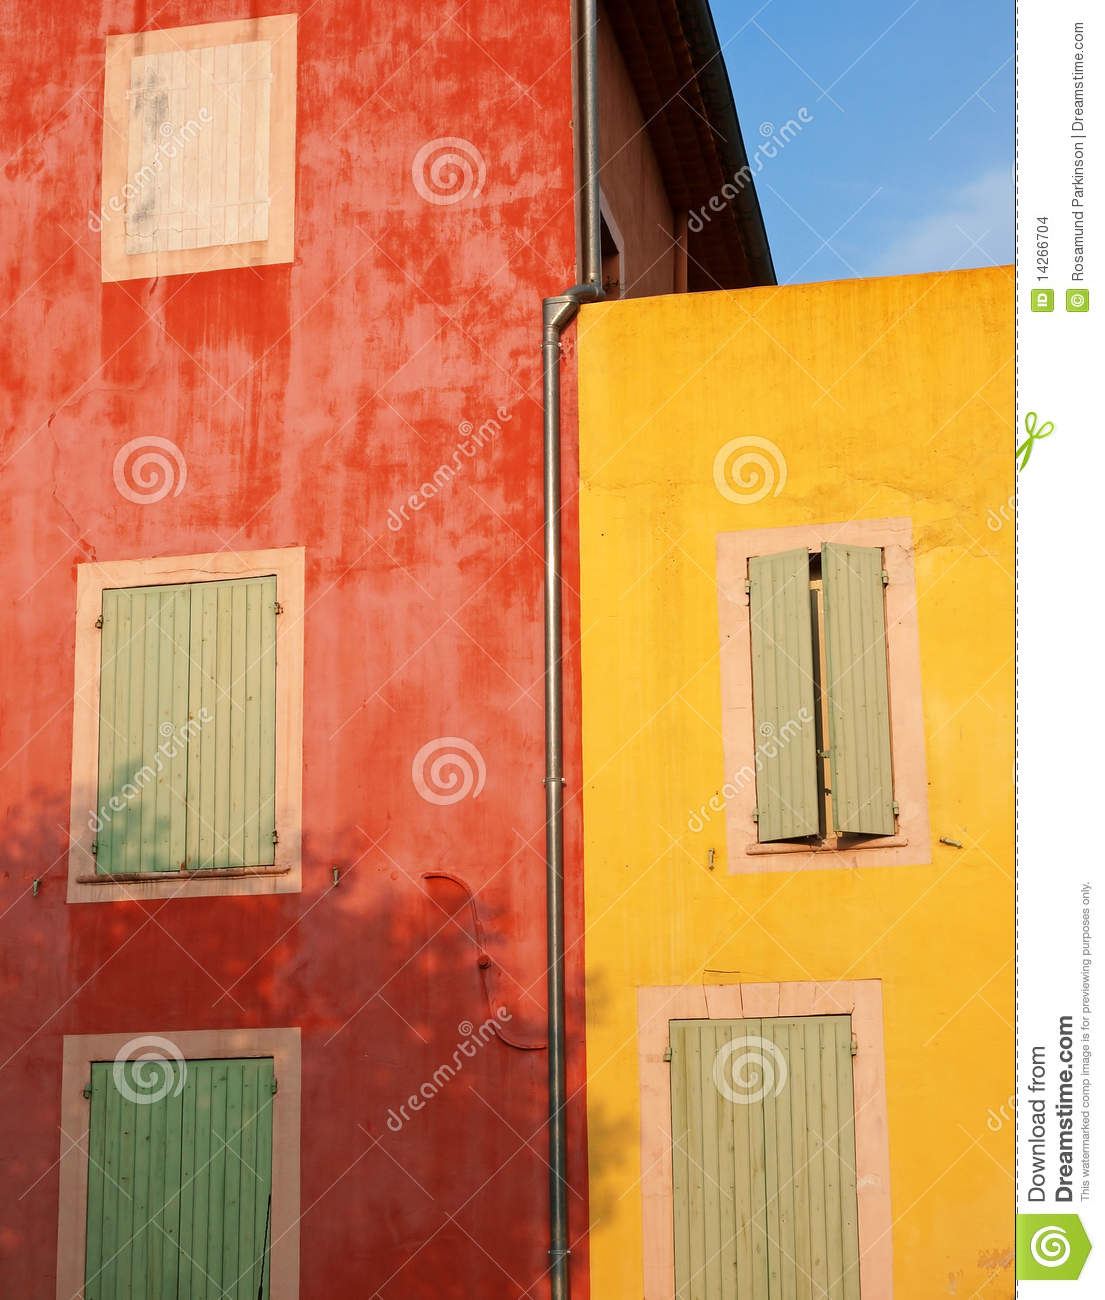 Colorful Walls Of Roussillon, France Stock Photo - Image of rosamund ...